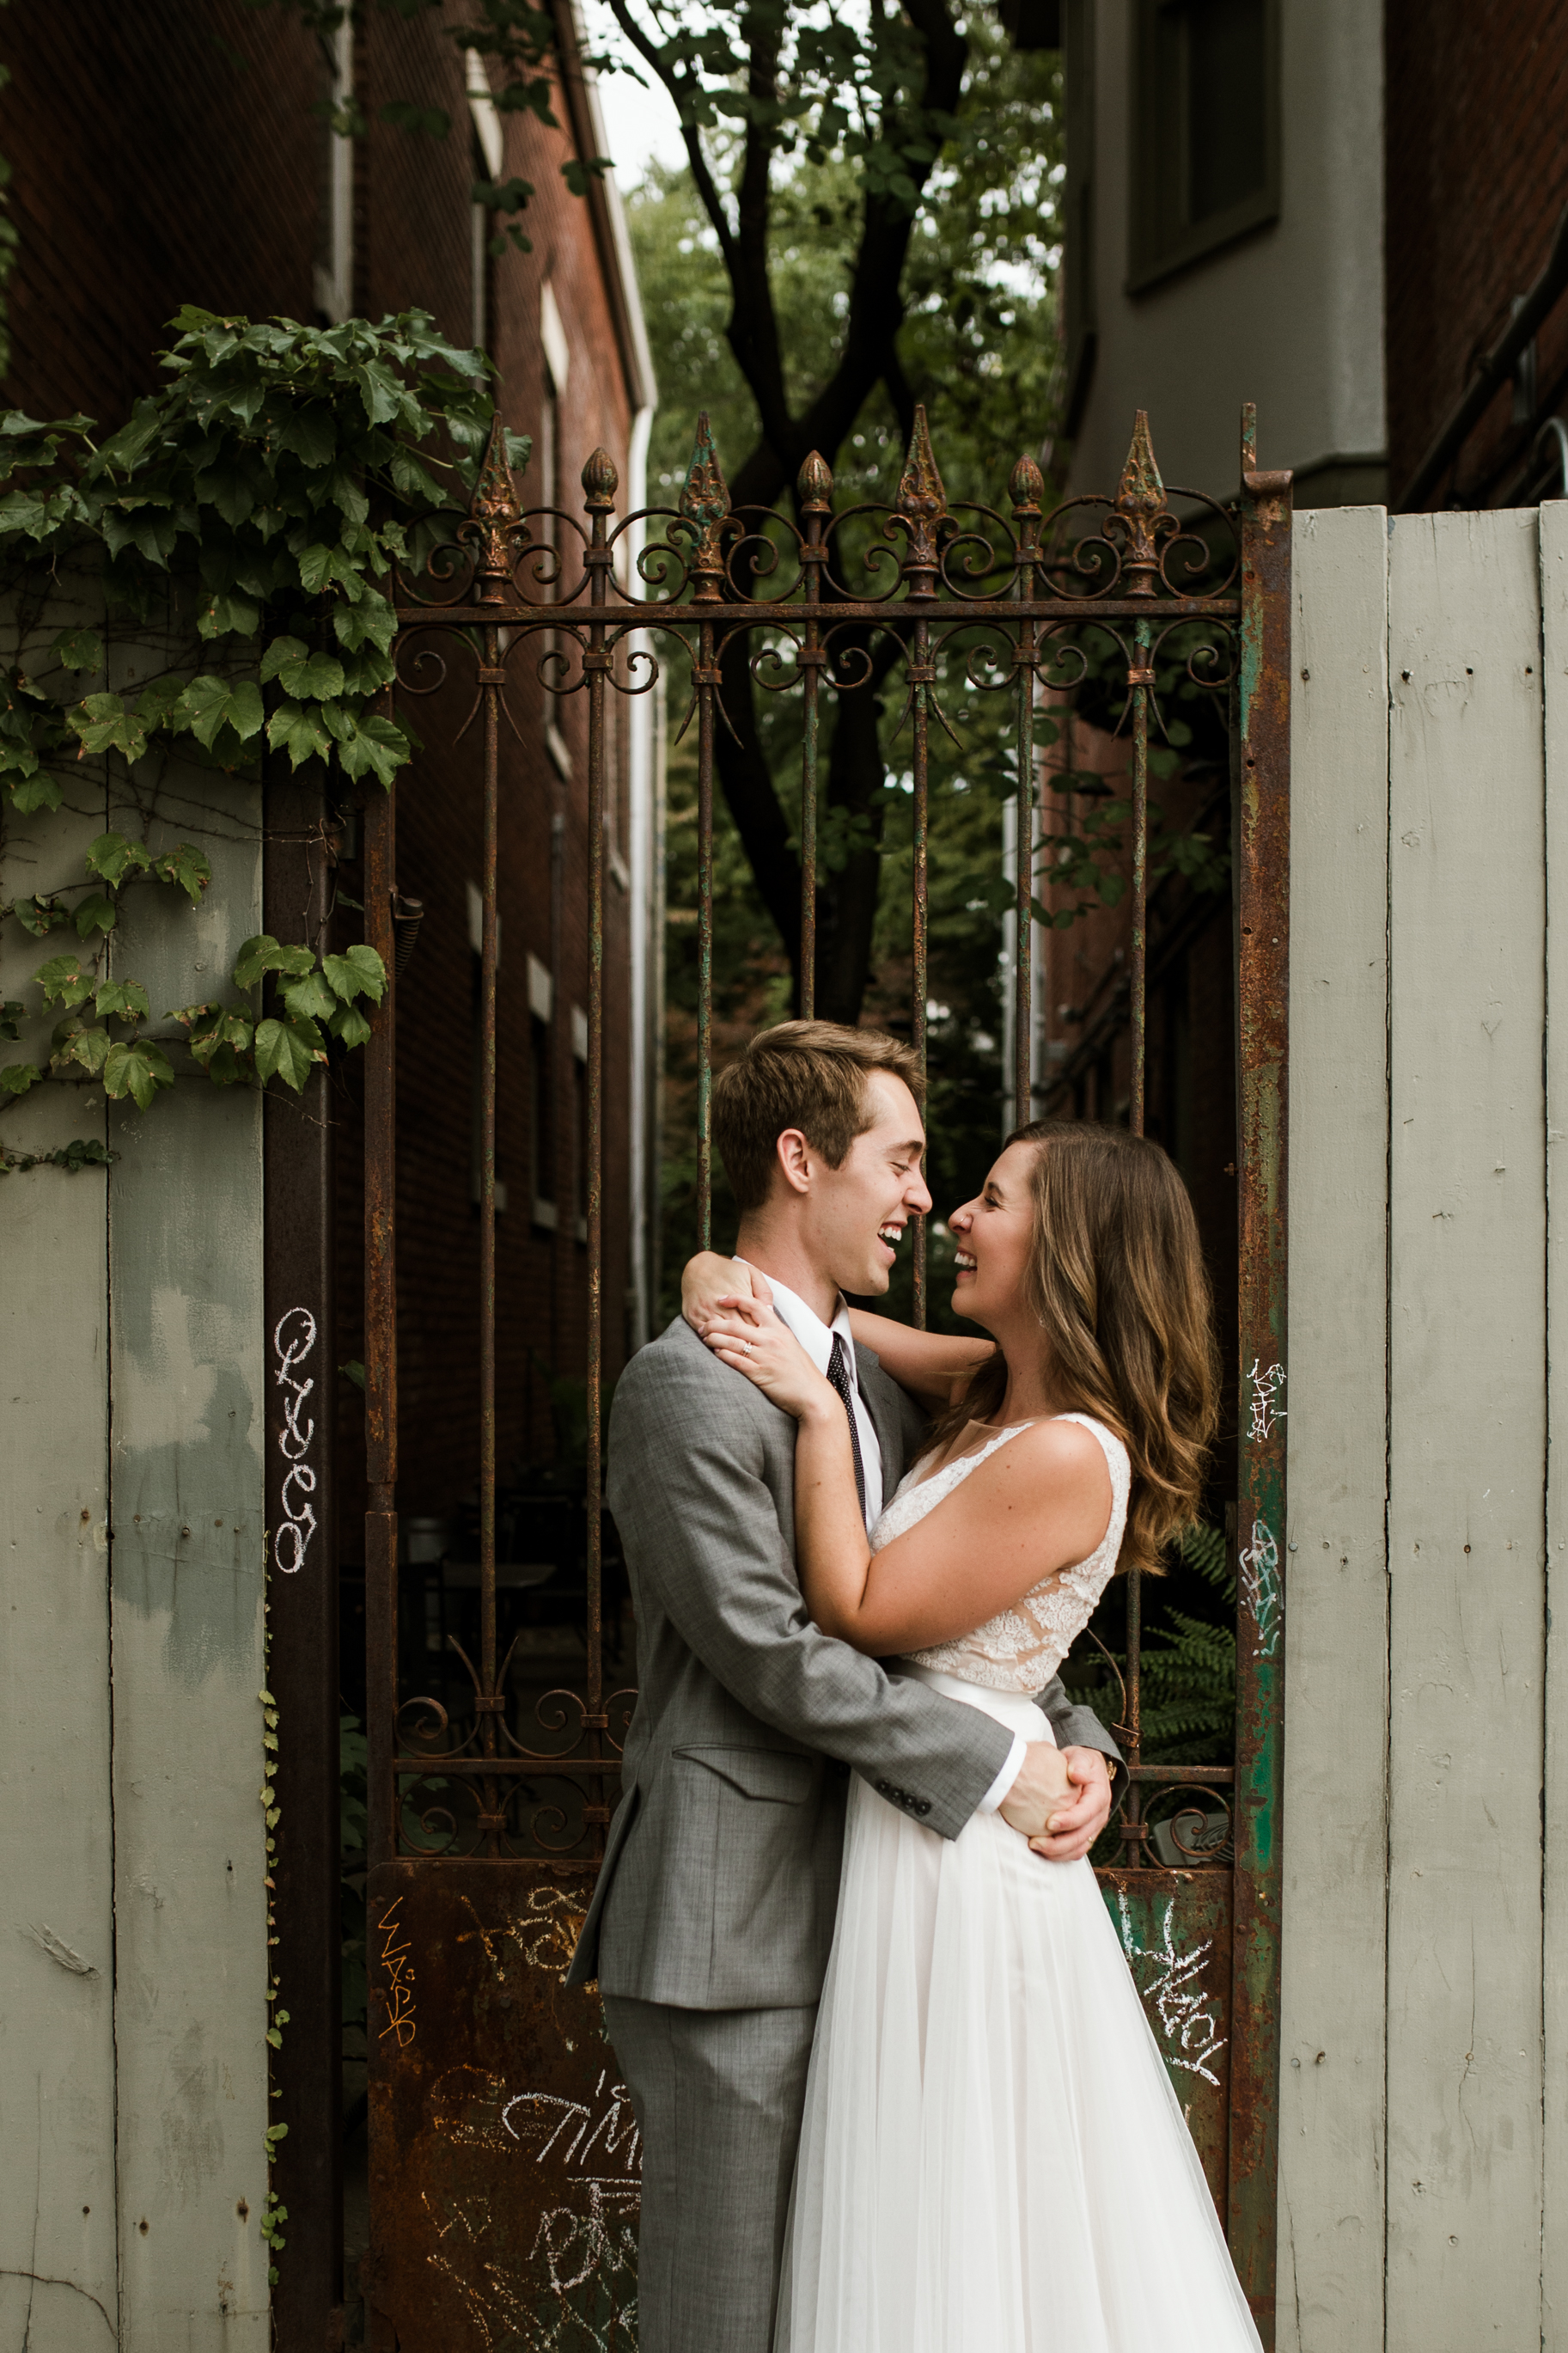 Amanda & Dave Anniversary 2018 Crystal Ludwick Photo Louisville Wedding Photographer Kentucky Wedding Photographer (31 of 43).jpg